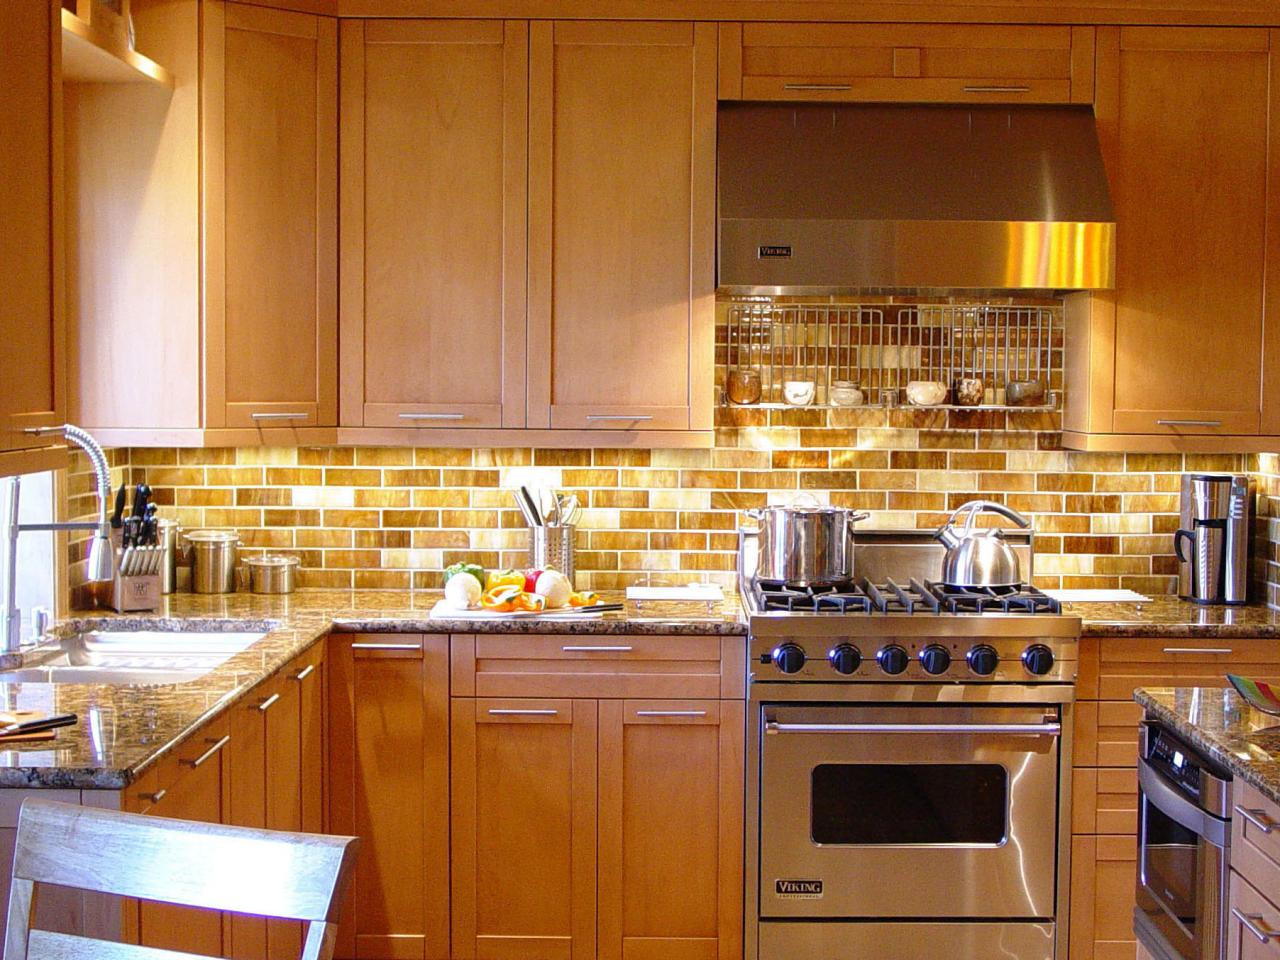 Kitchen Backsplash Design Kitchen Backsplash Tile Ideas